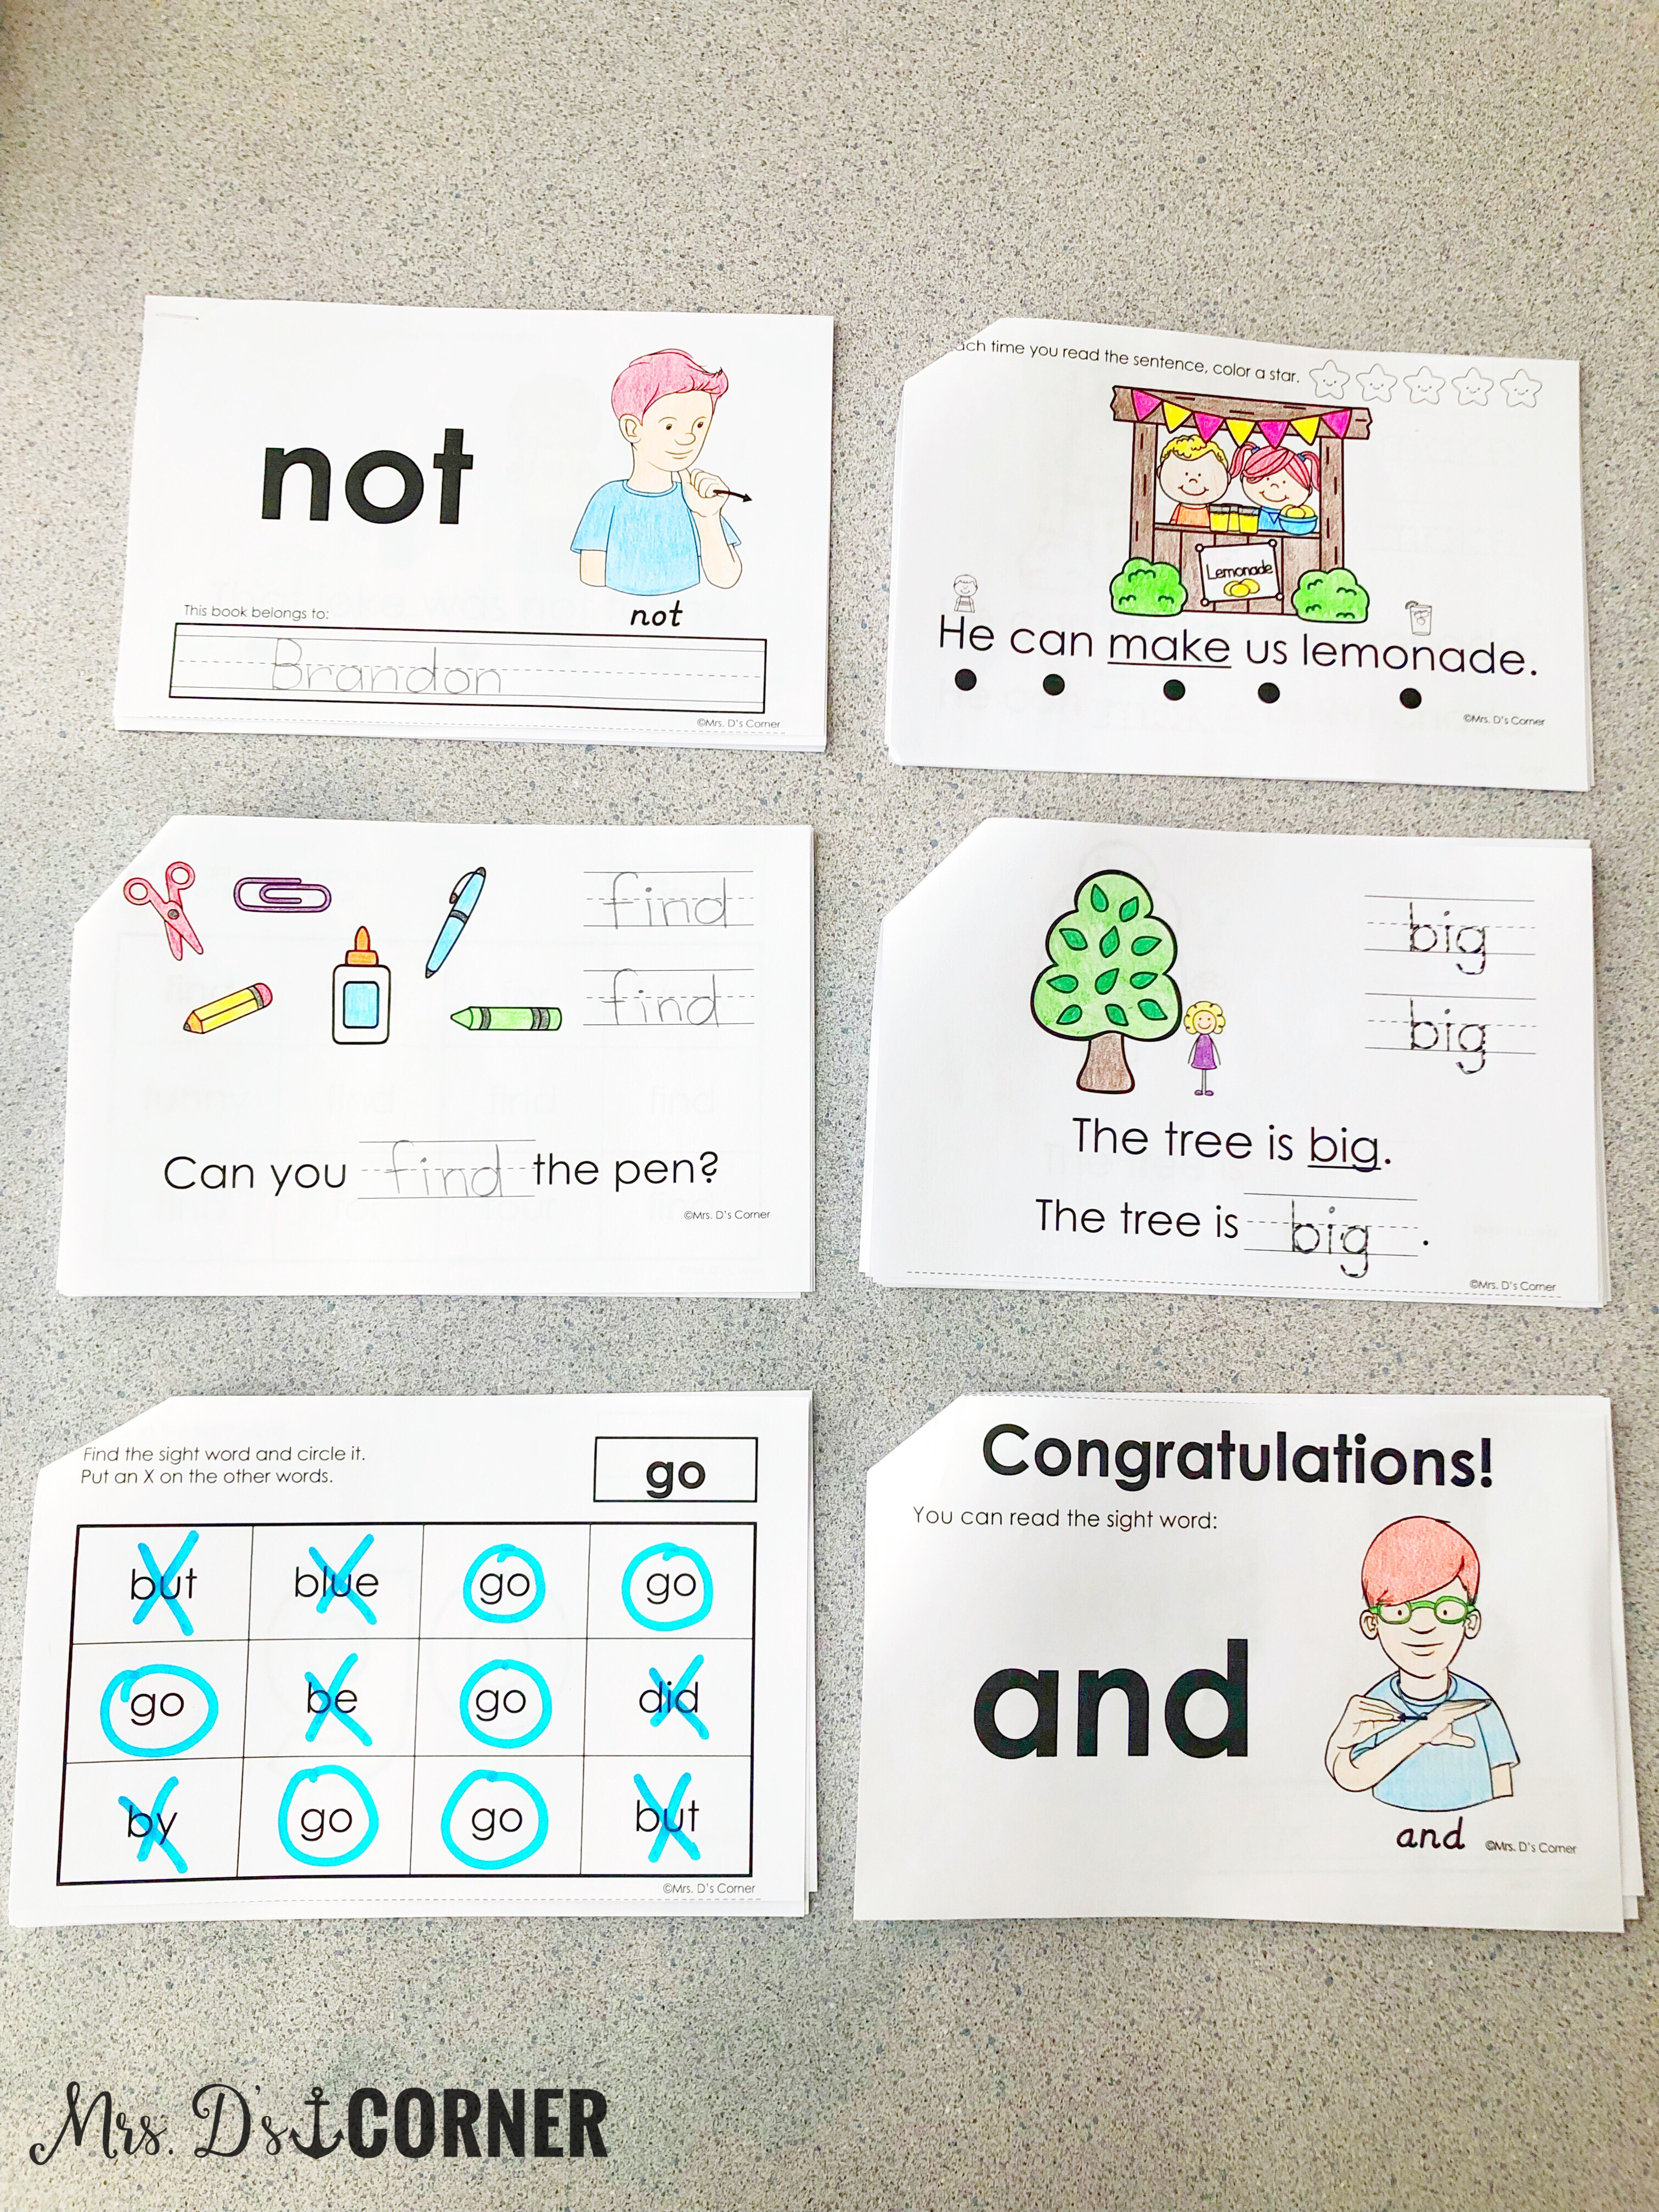 photo relating to Sight Word Books Printable named Printable, Interactive Sight Phrase Textbooks for Unique Ed - Mrs